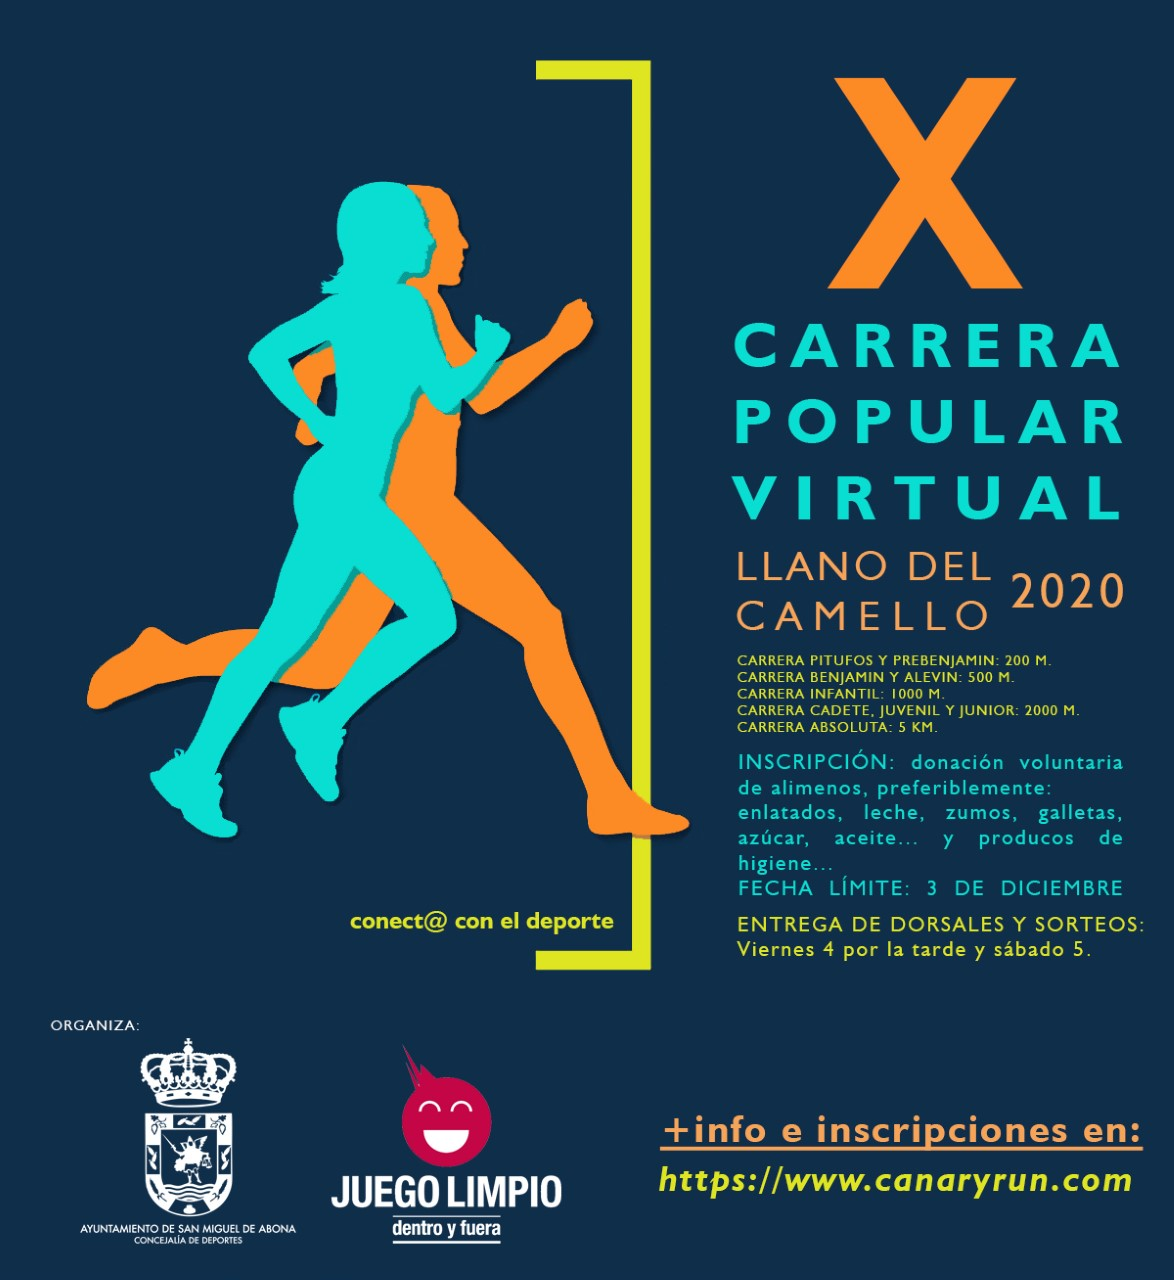 X Carrera Popular Virtual Llano del Camello 2020